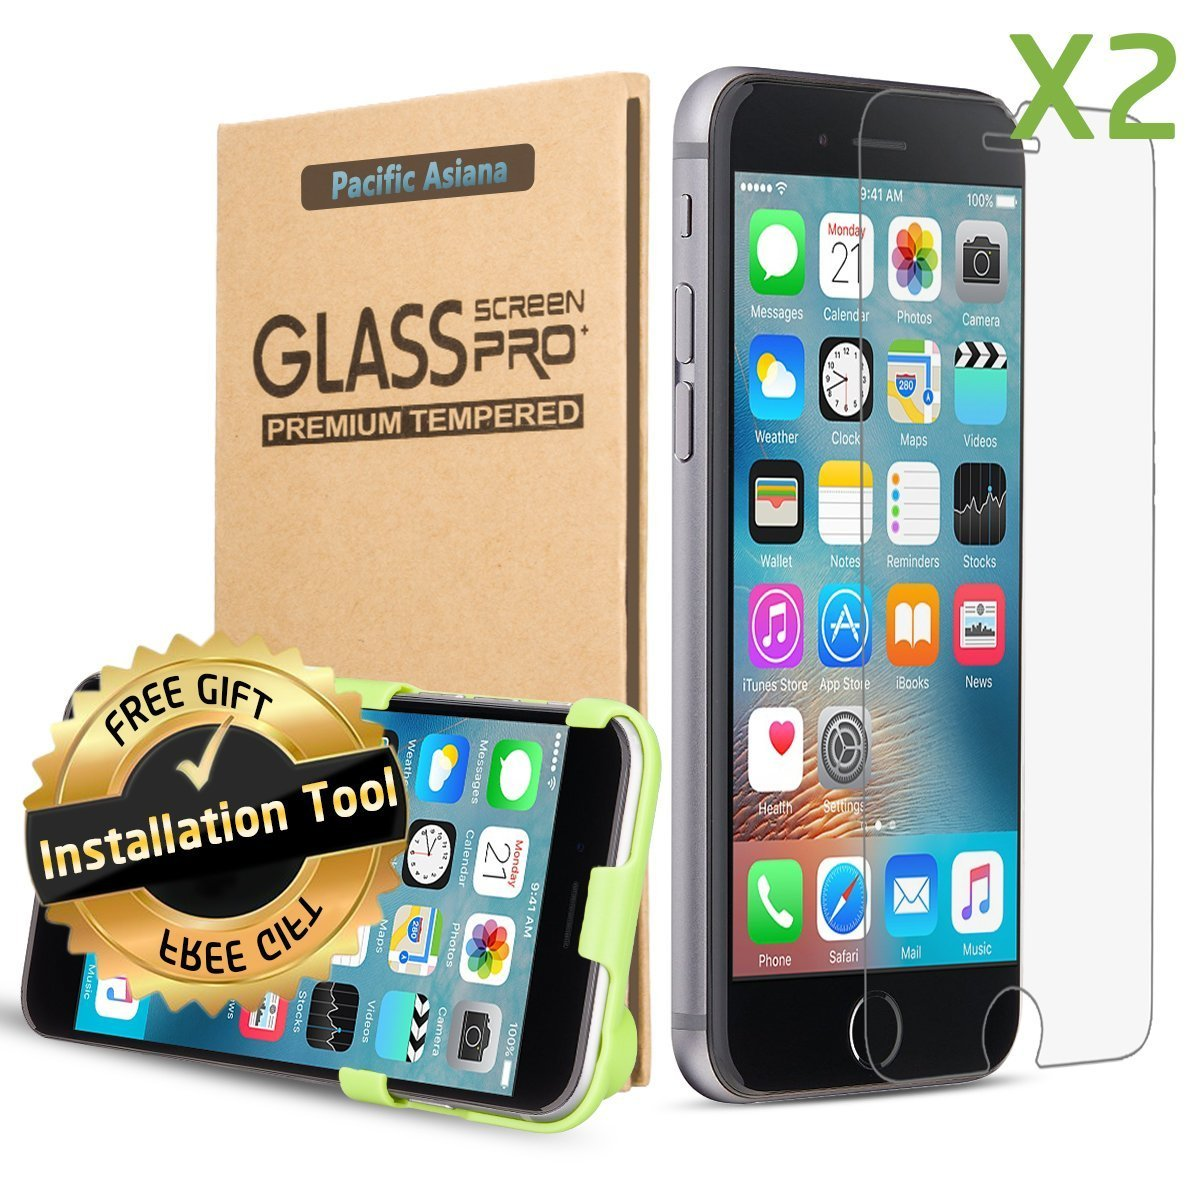 [2-pack with Tool] iPhone 7 Screen Protector, Pacific Asiana Premium 0.3mm HD Clear [Tempered Glass] Screen Cover Film, 9H Hard/Scratchproof/Easy to Install Screen Saver for Apple iPhone 6S/6 iPhone 7